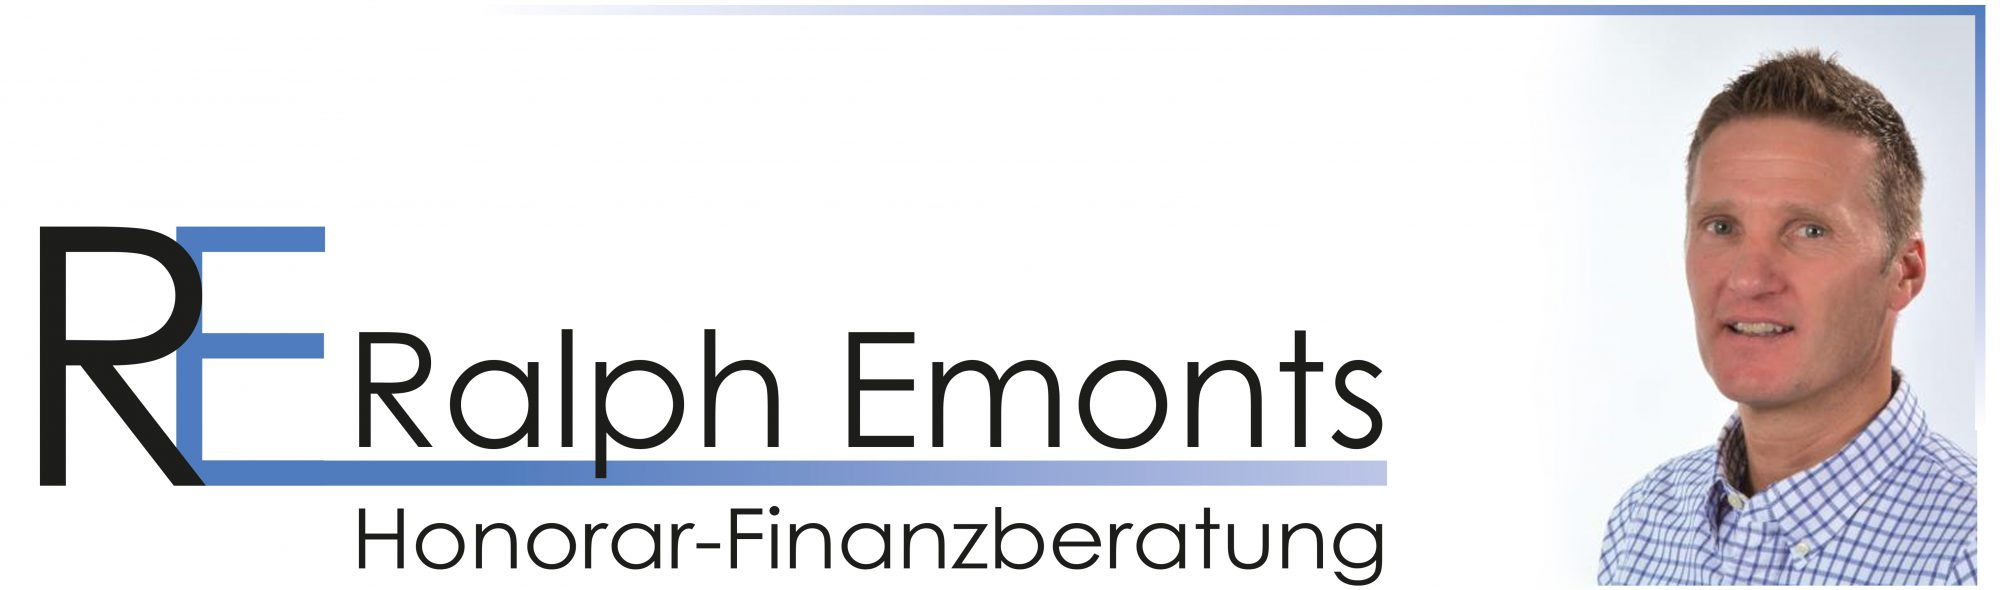 Honorar-Finanzberatung Emonts